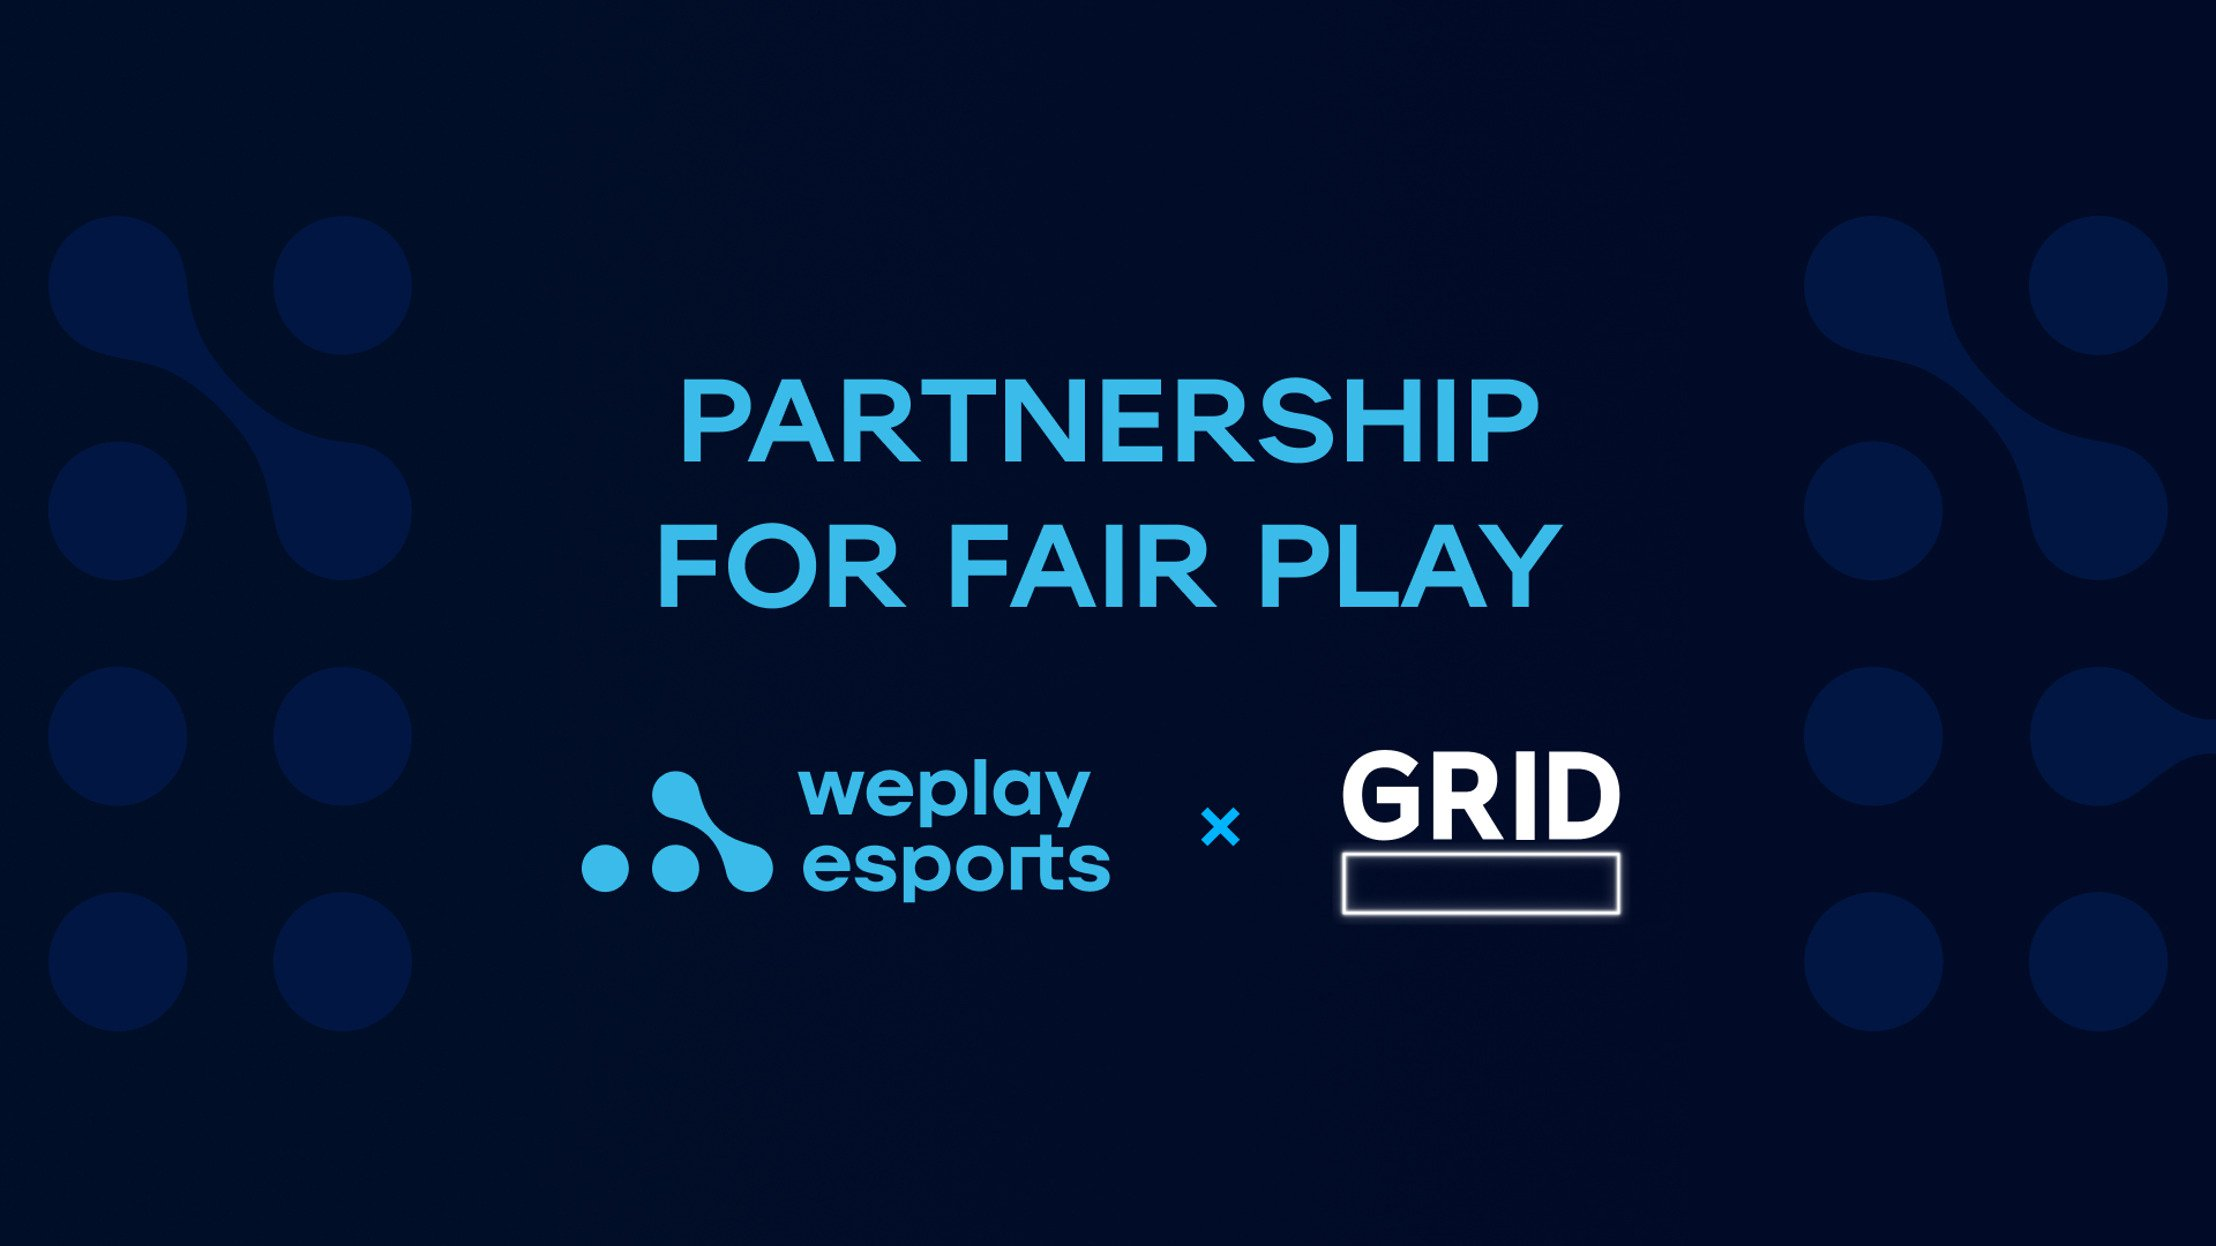 WePlay Esports and GRID: partnership for fair play